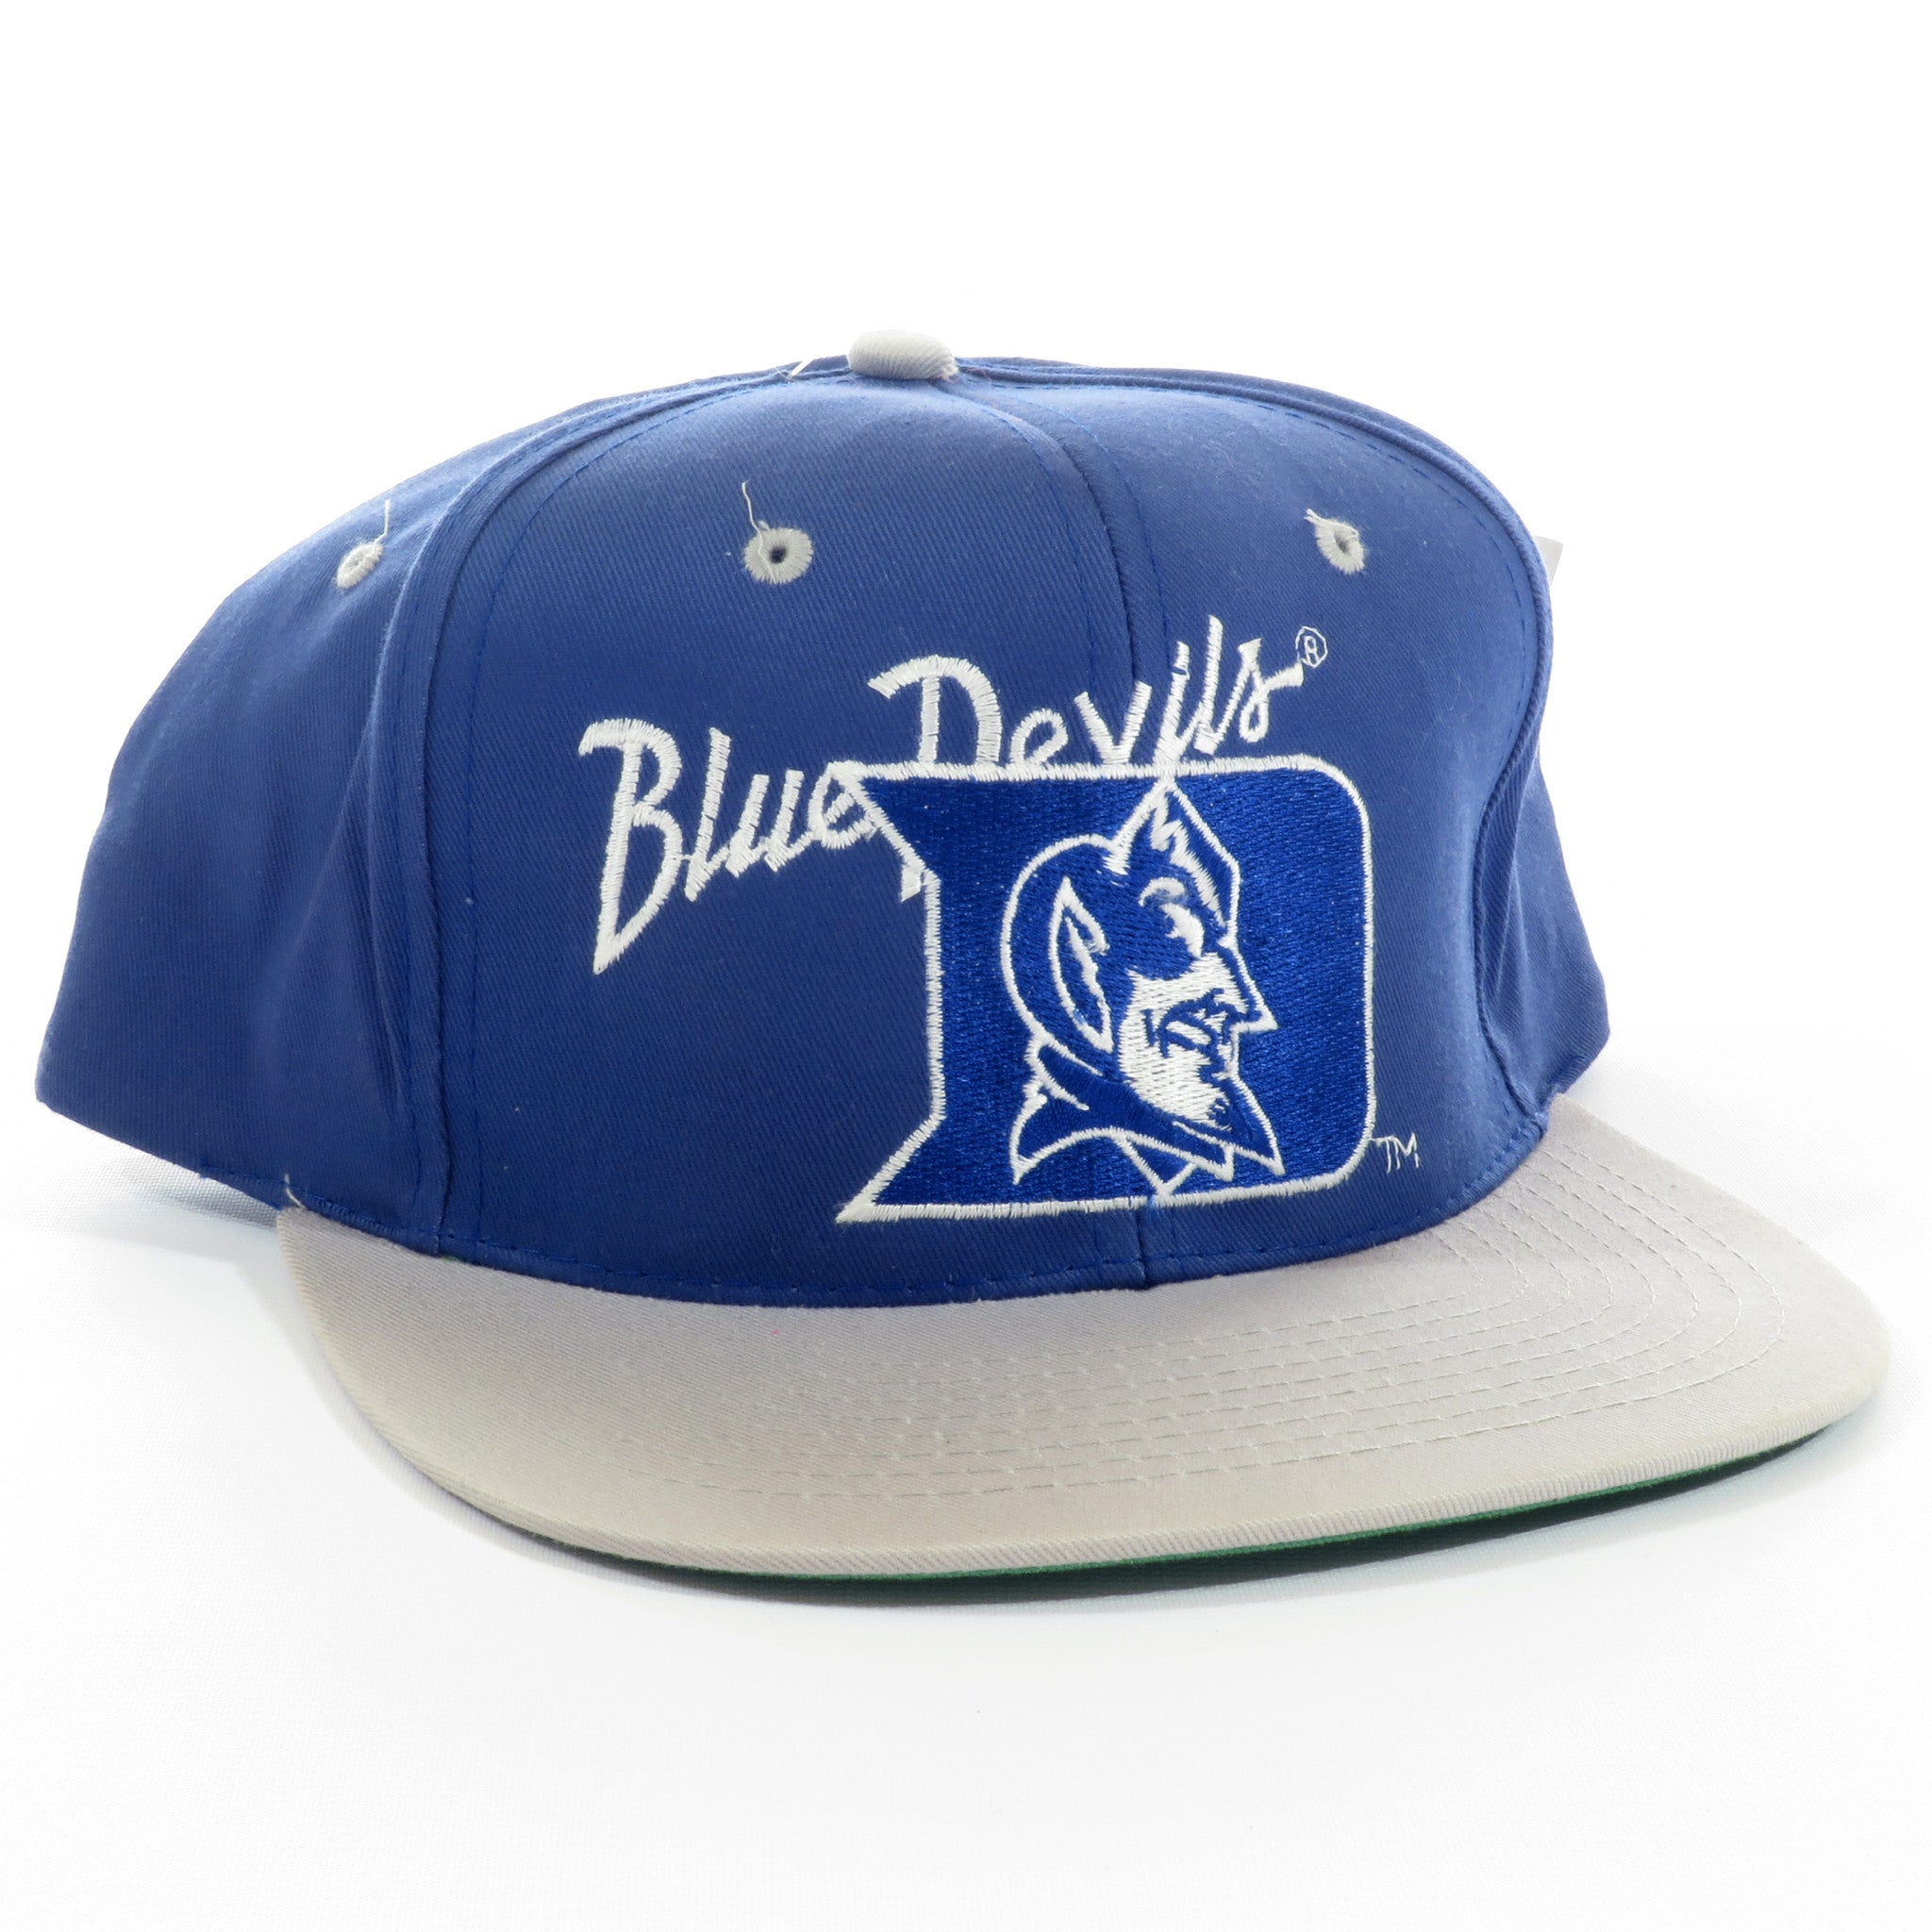 Duke Blue Devils Snapback Hat